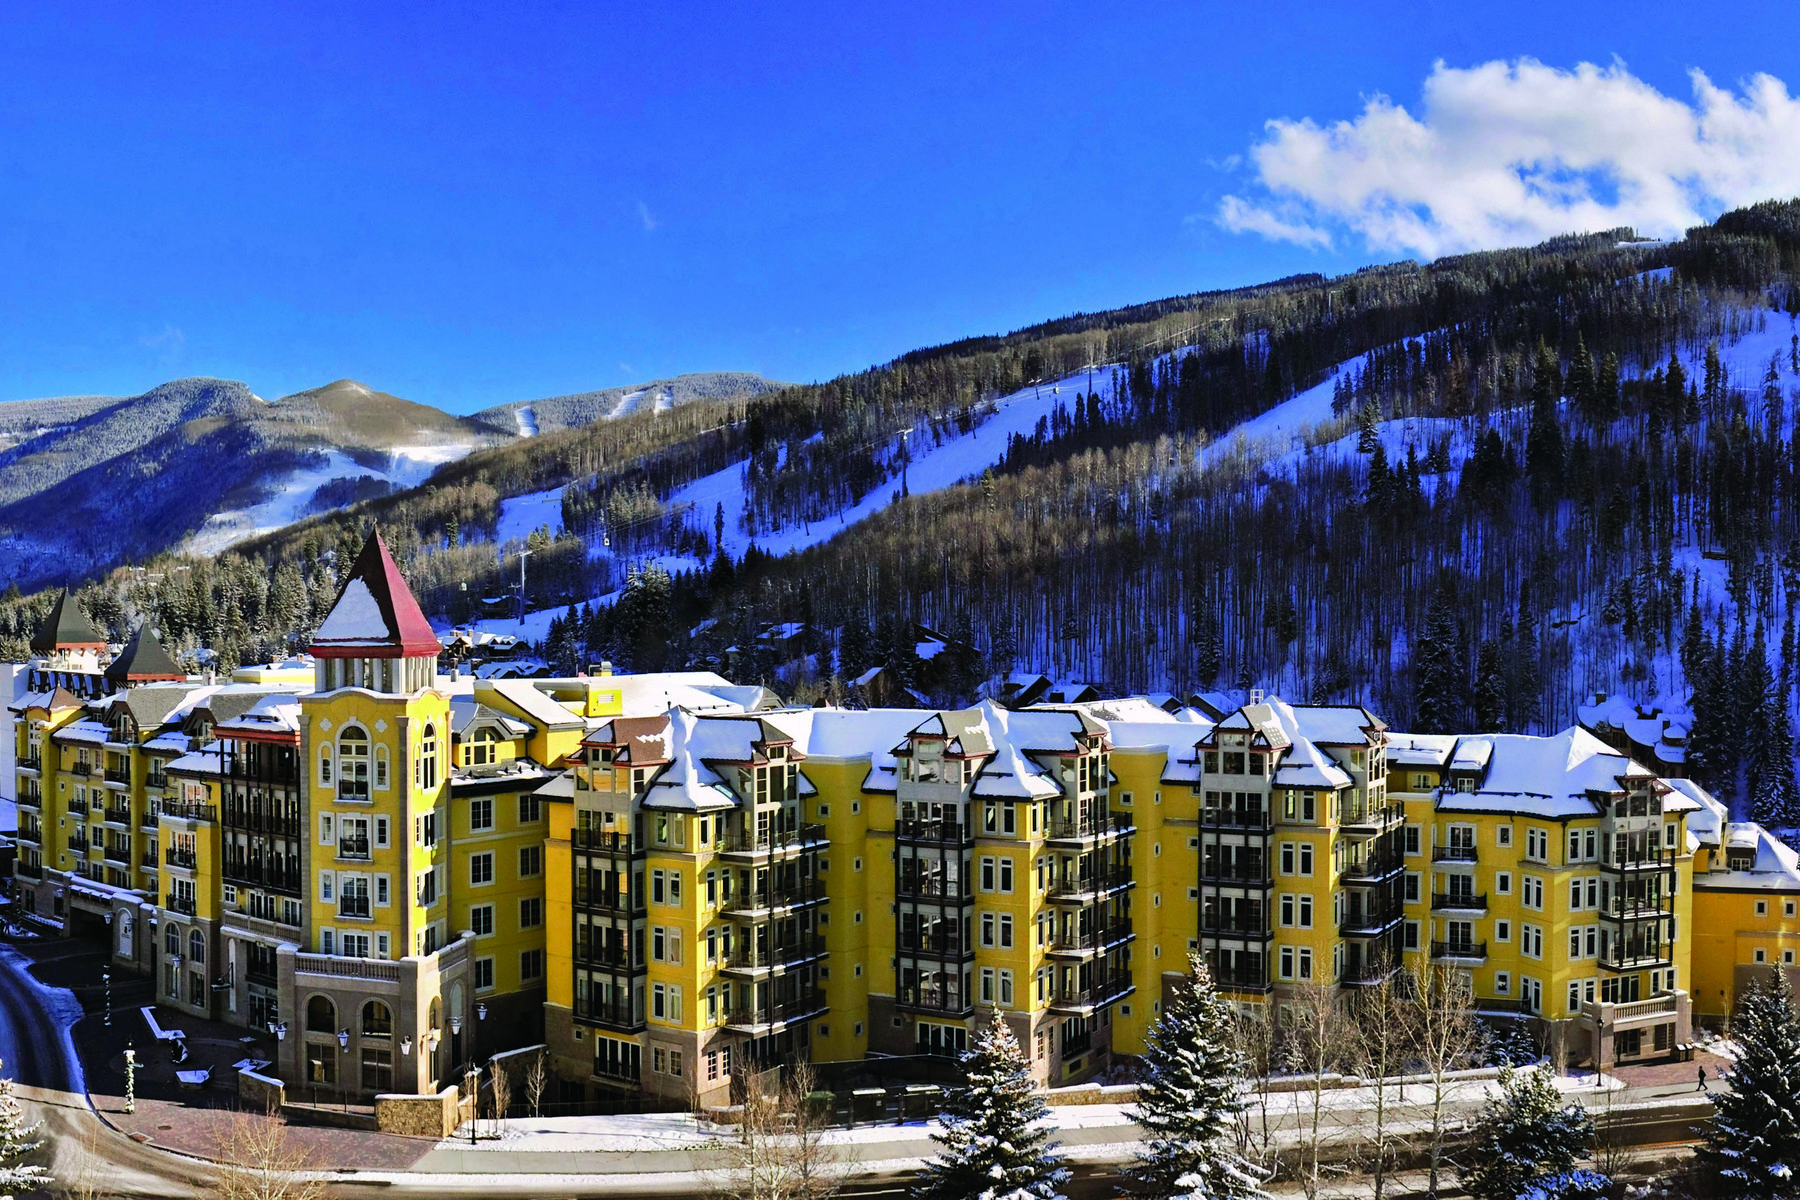 Condominium for Sale at The Ritz-Carlton Residence R111 728 West Lionshead Cir #R-111, Lionshead, Vail, Colorado, 81657 United States